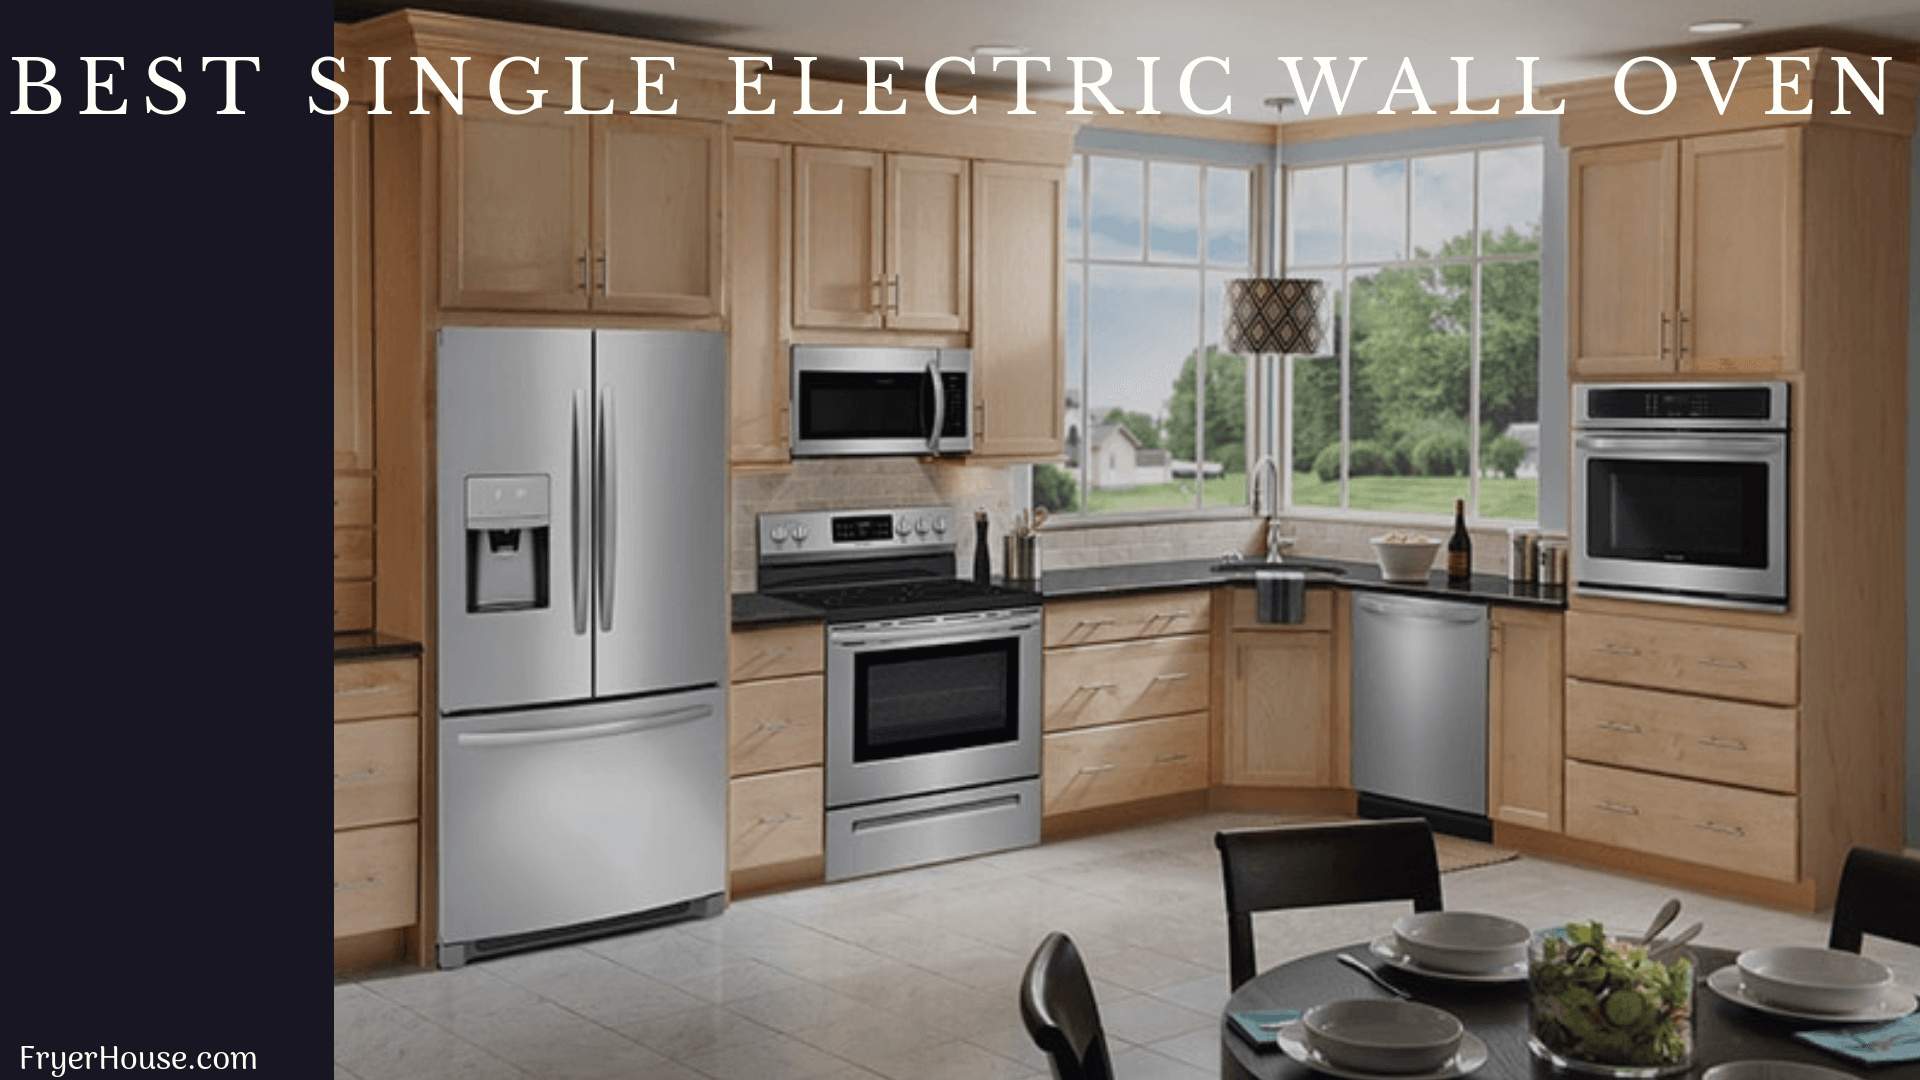 Best Single Electric Wall Oven